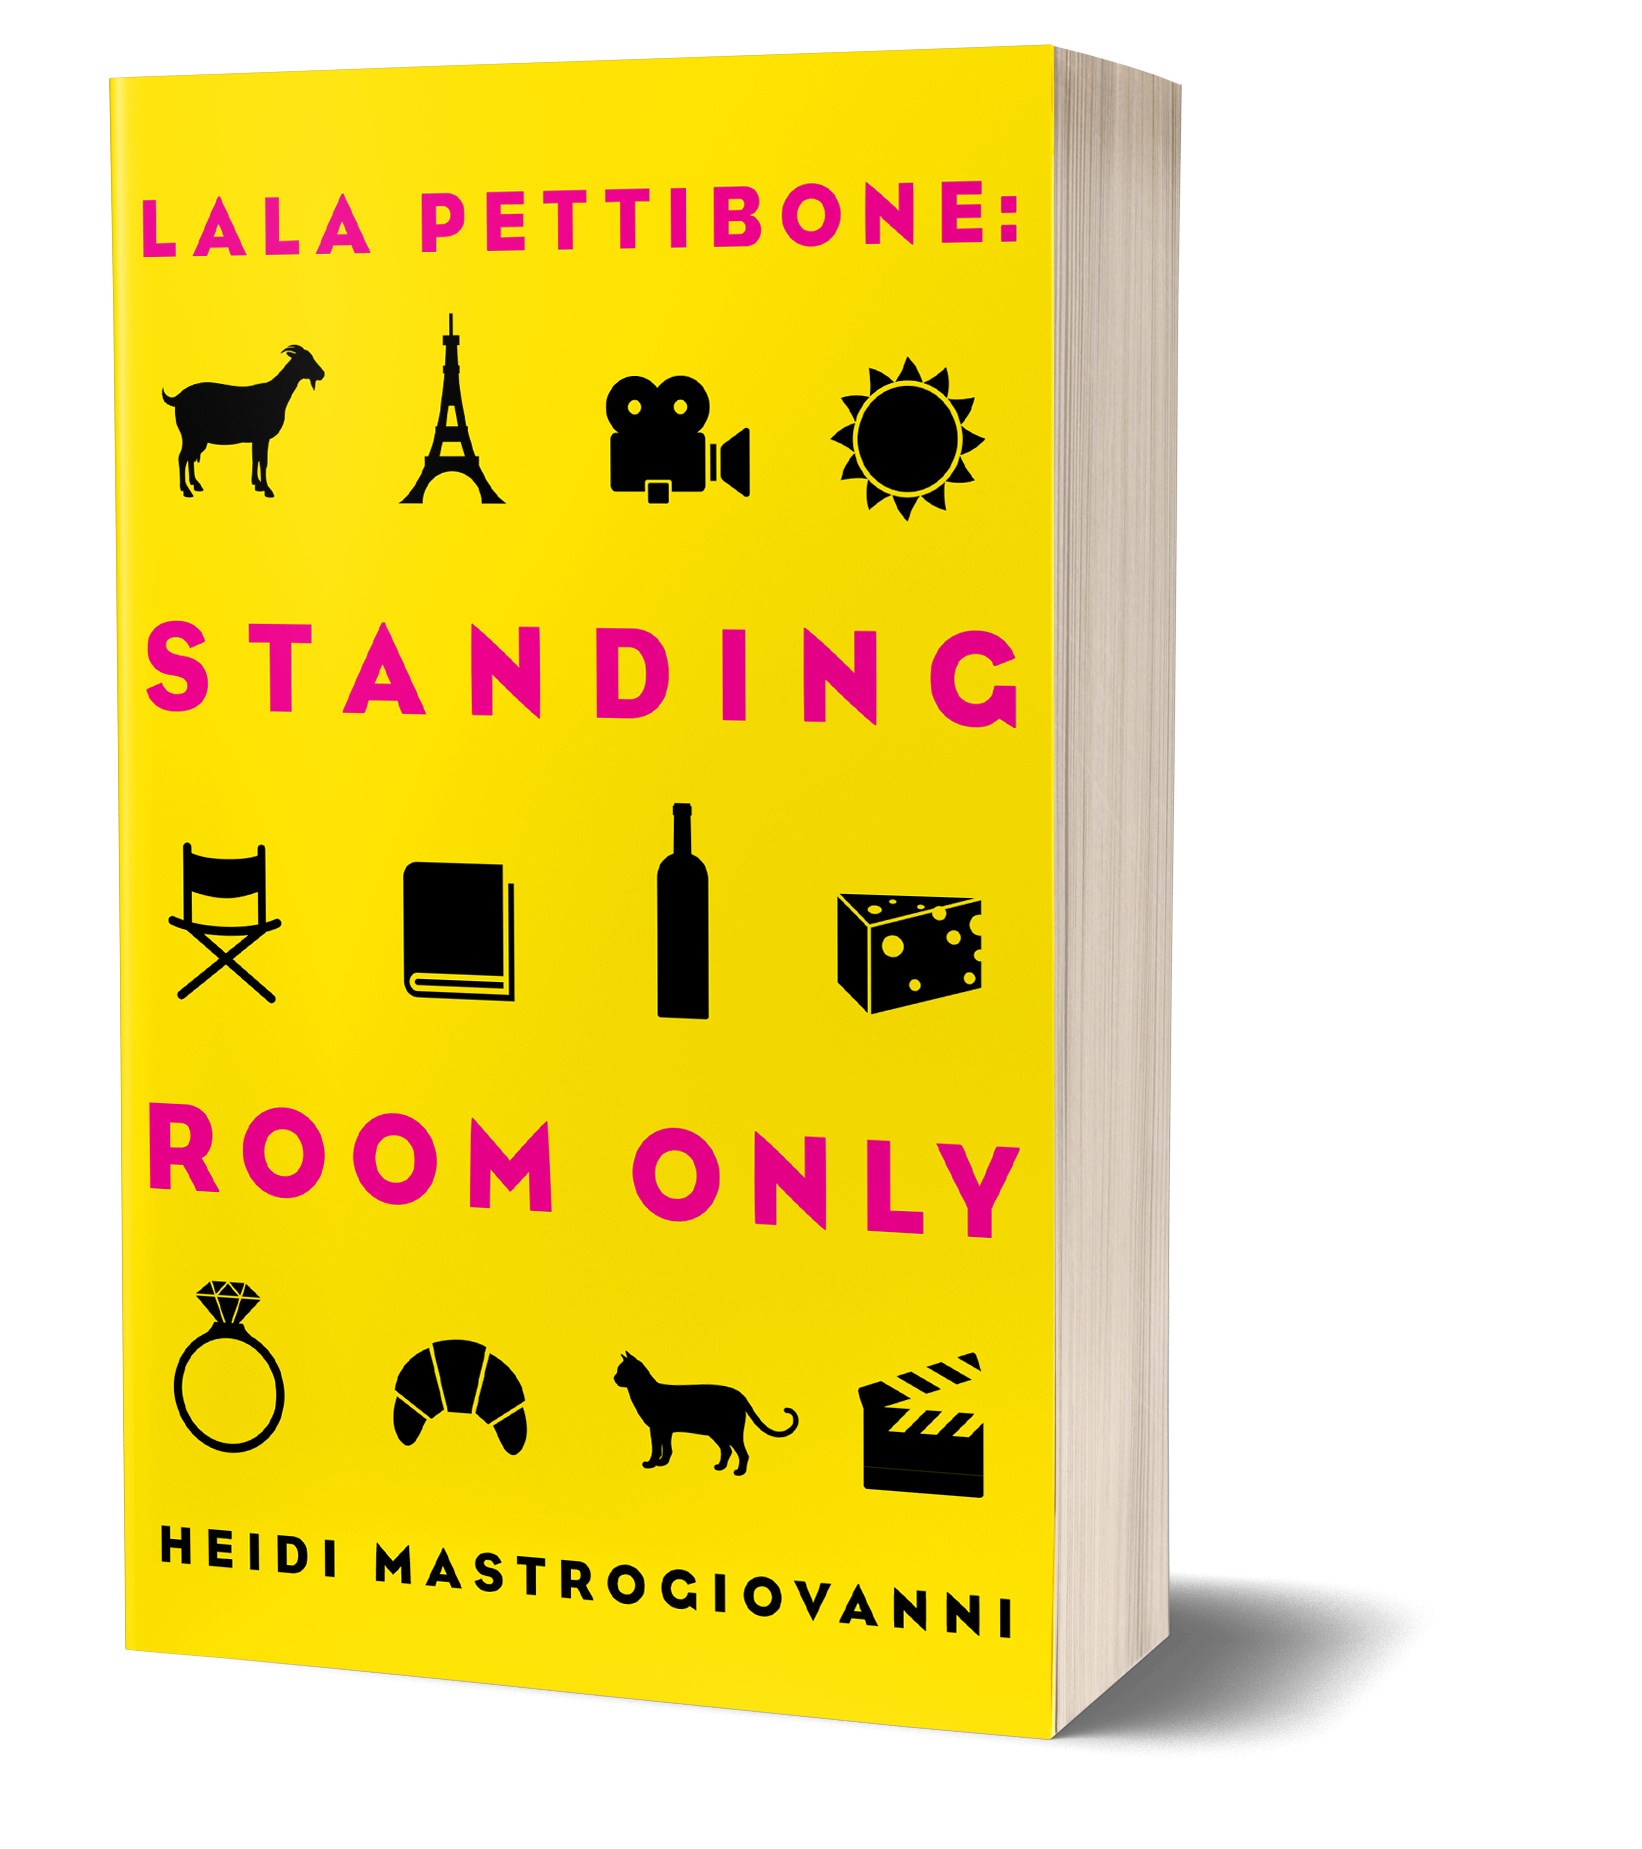 Lala Pettibone: Standing Room Only, yellow cover, pink words, wine, cheese, ring, animals separate images